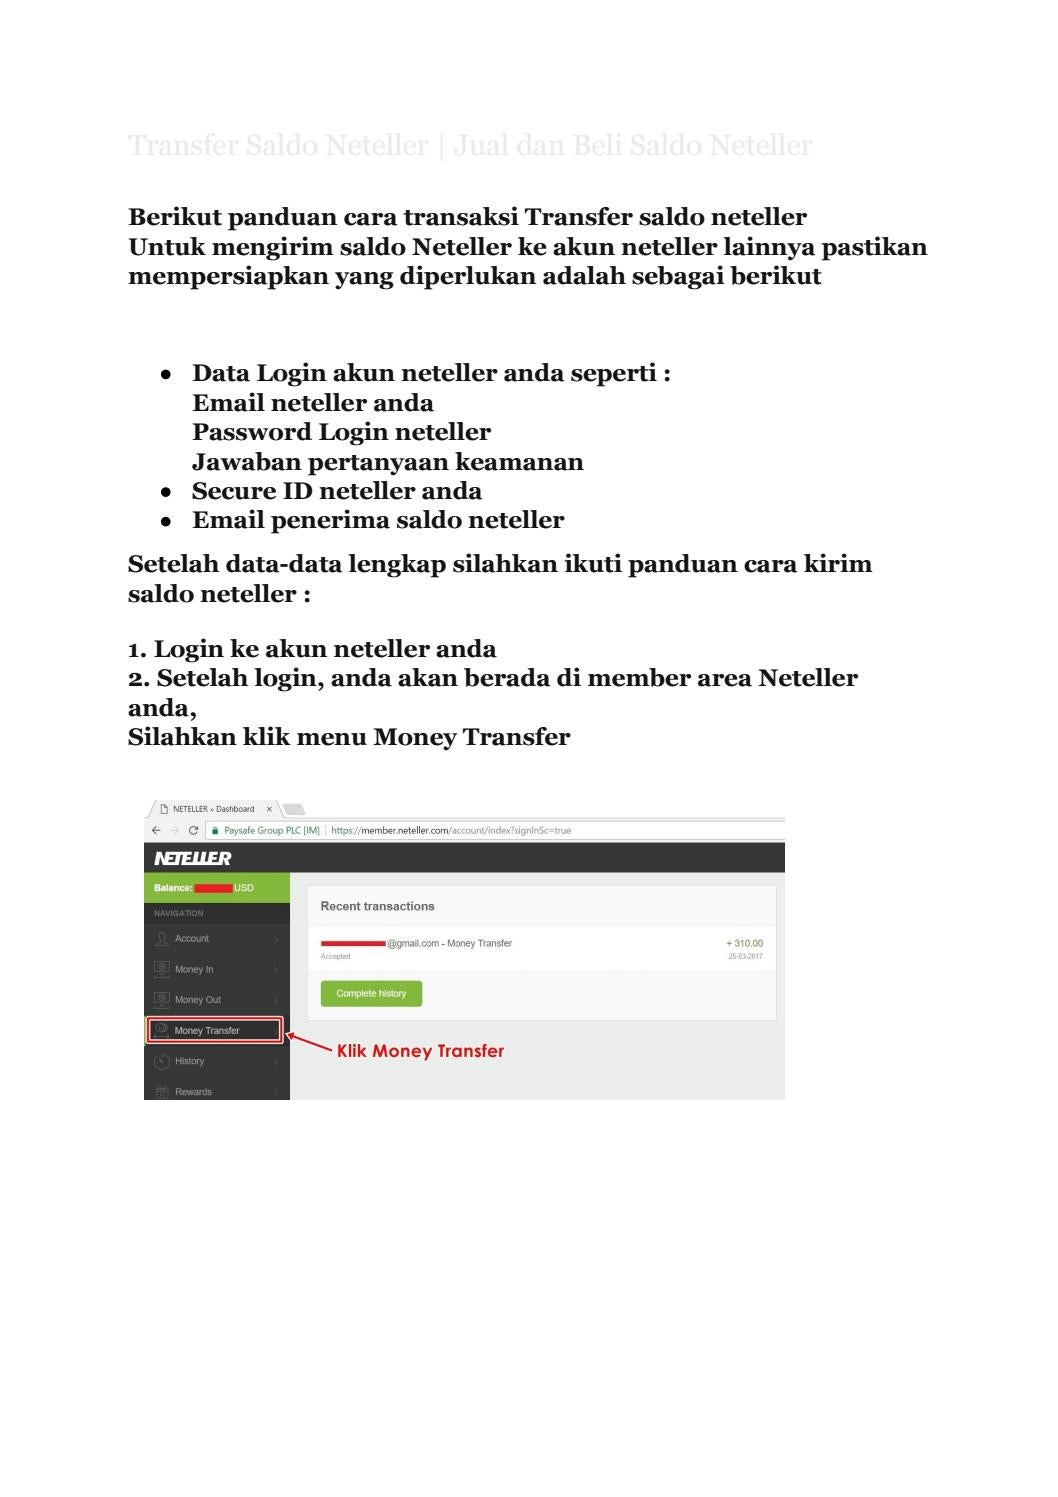 Transfer Saldo Neteller Jual Dan Beli Saldo Neteller By Www Emoney Cash Issuu